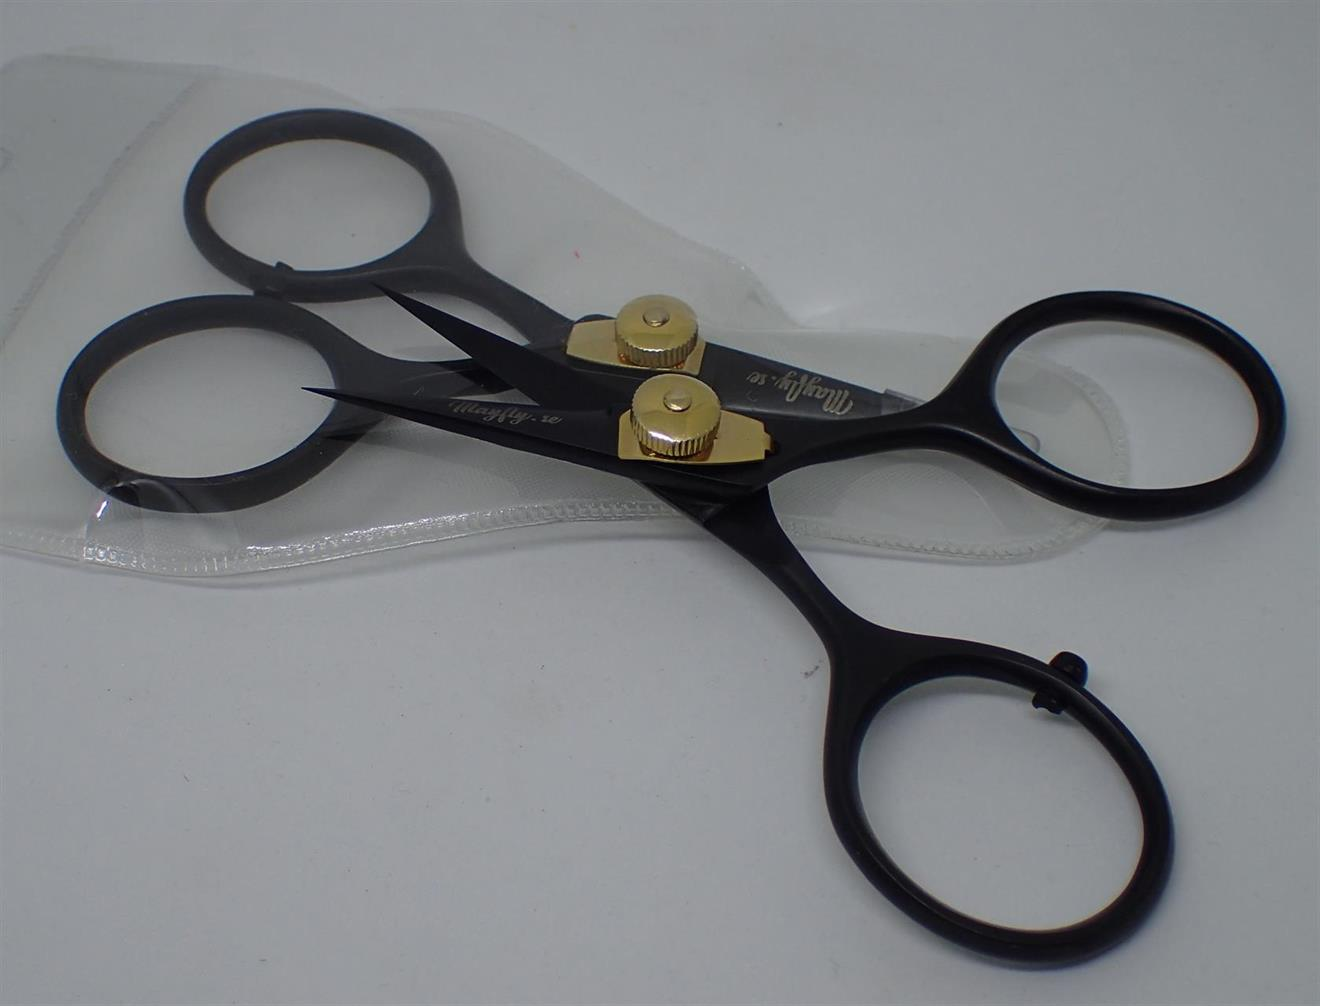 Razor scissor- All black